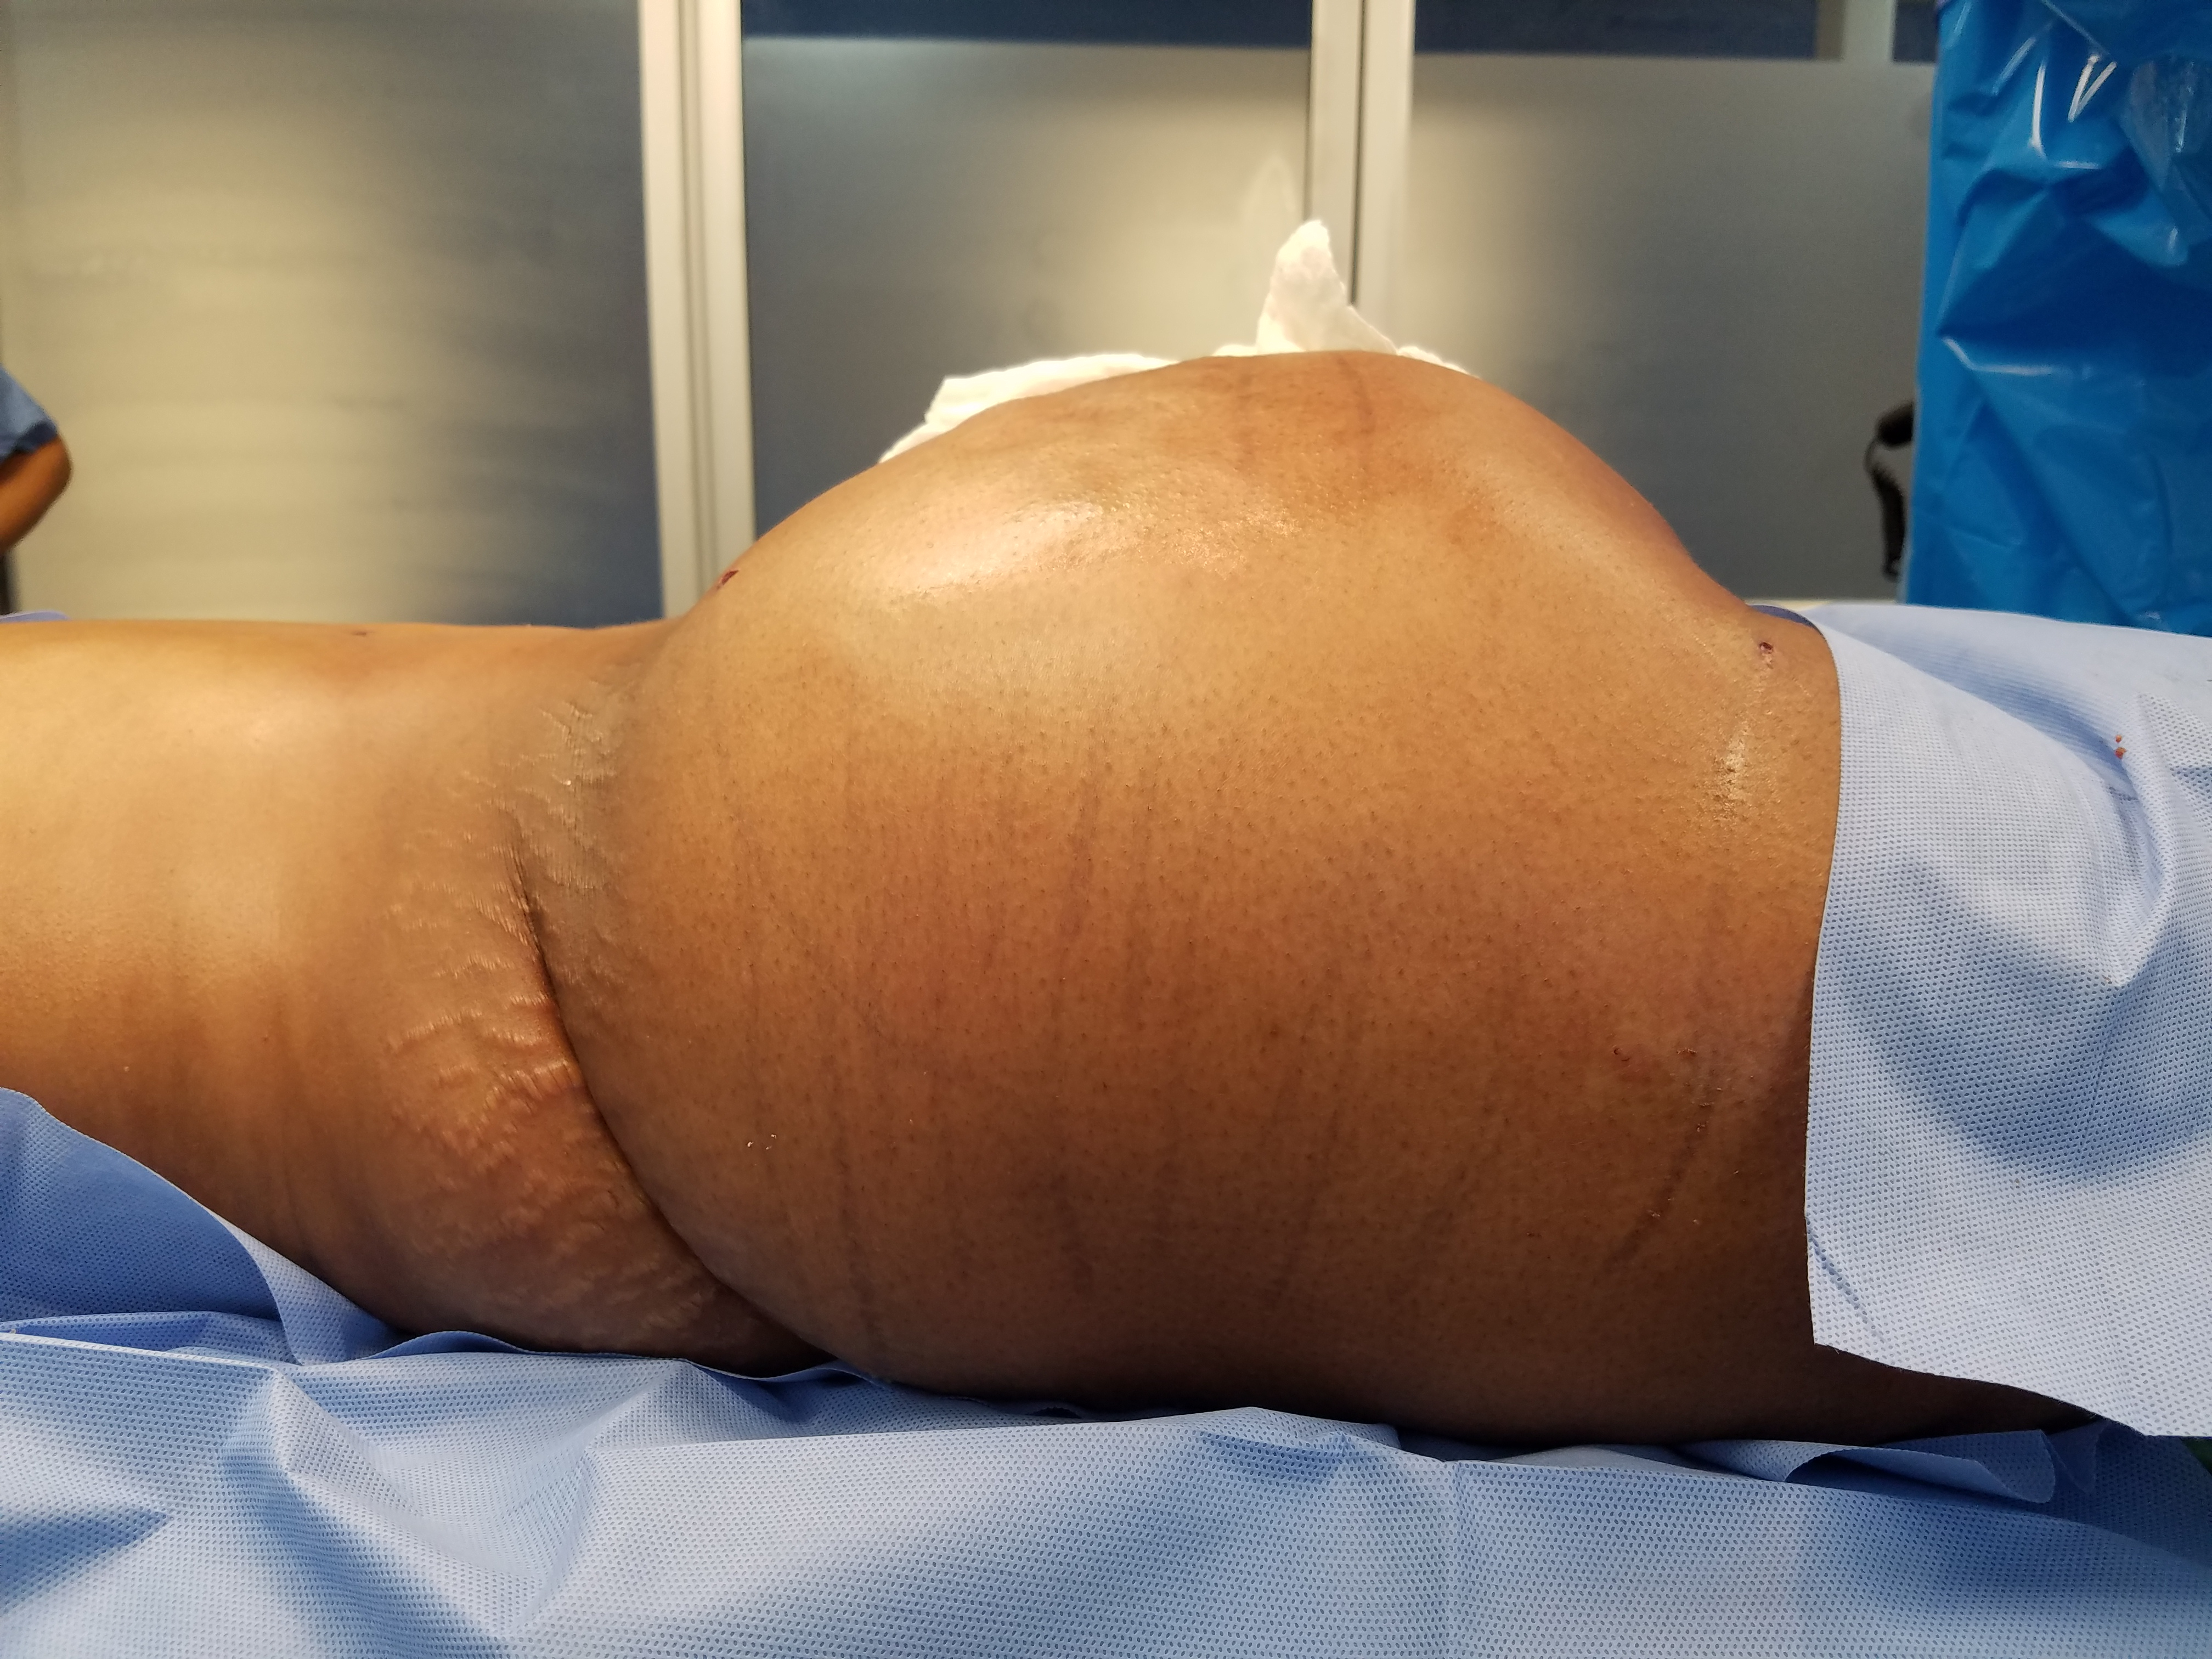 Atlanta liposuction, liposuction atlanta, atlanta brazilian butt lift, brazilian butt lift atlanta, therealdrmiami, drmiami, dr404, atlanta tummy tuck, tummy tuck atlanta